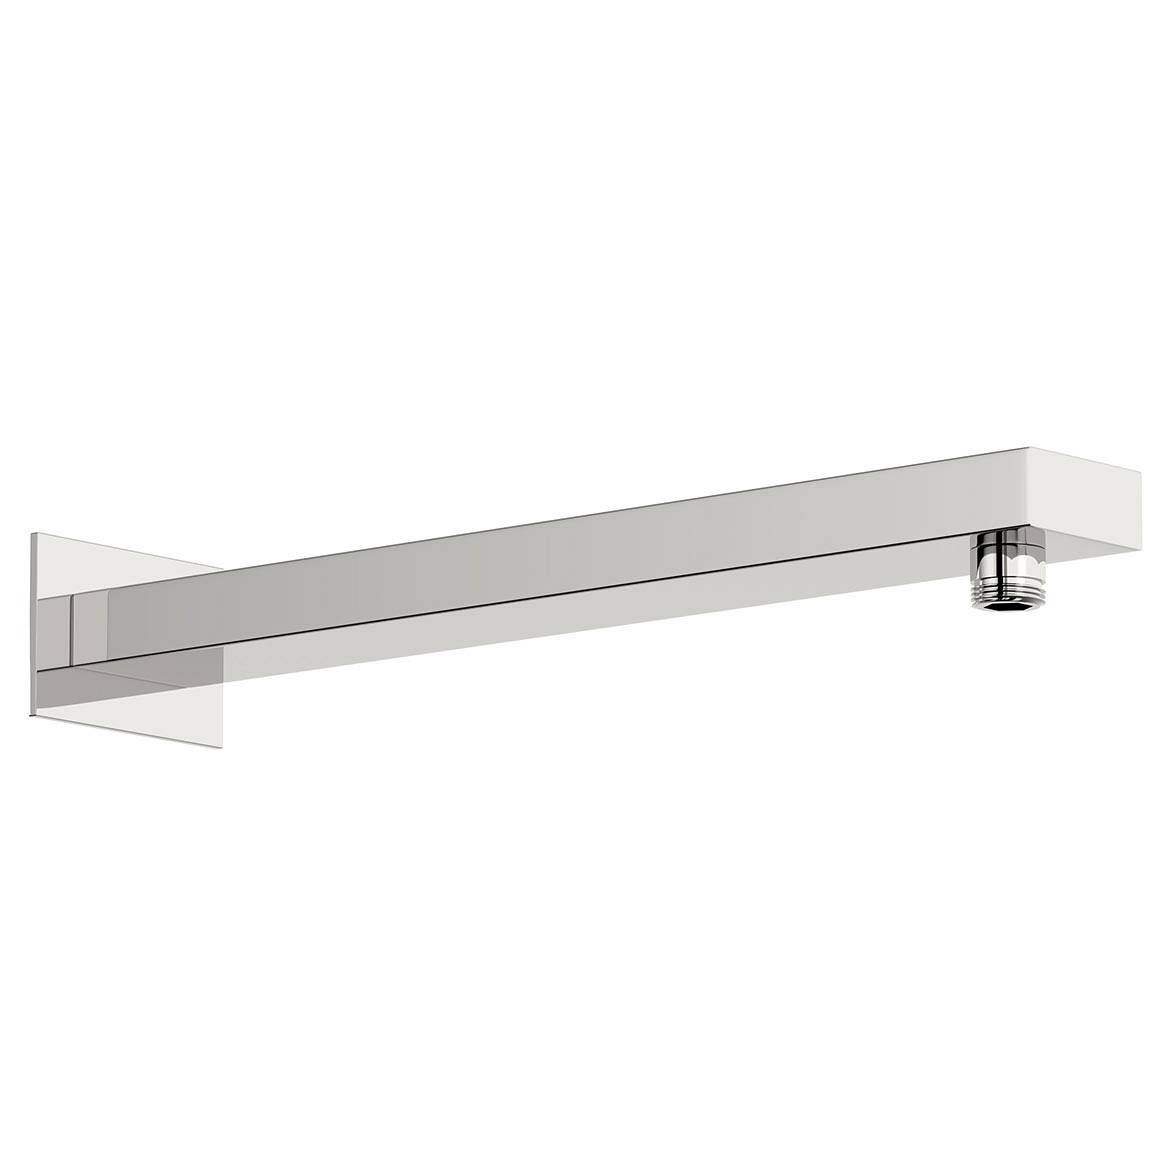 Image of Wall Shower Arm 400mm Rectangular